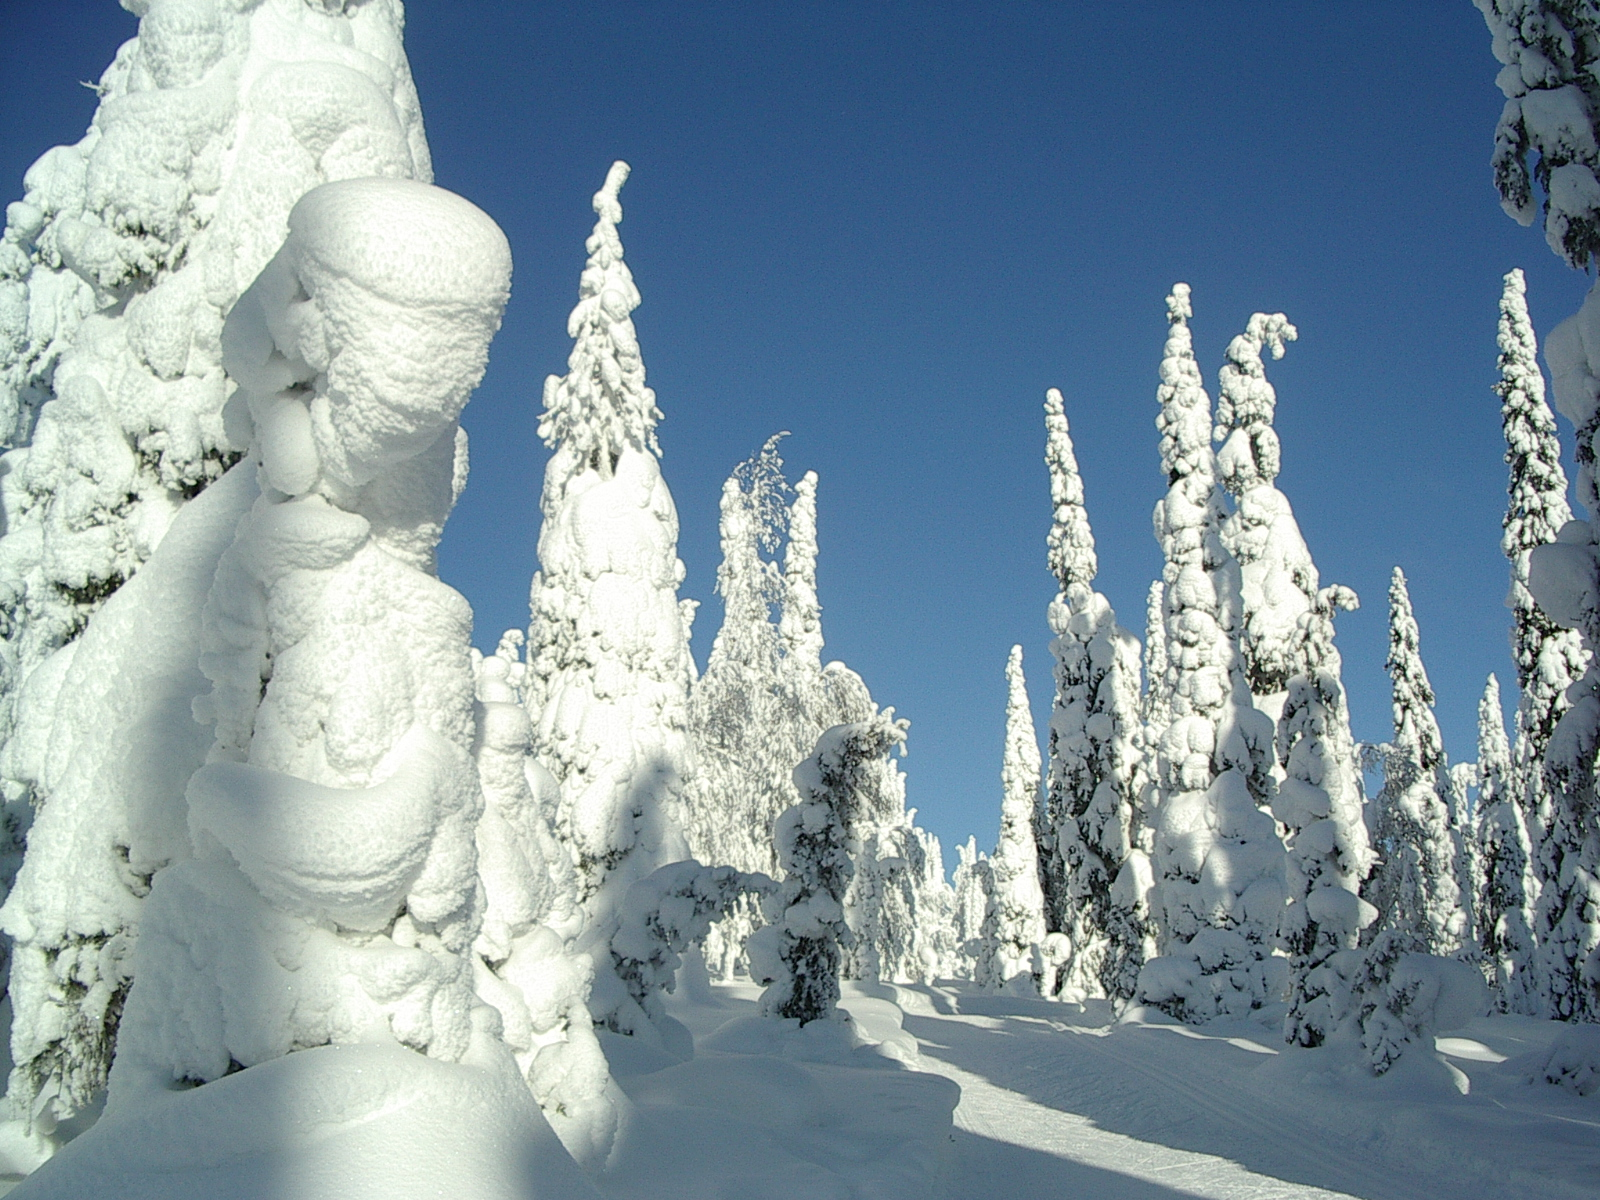 http://upload.wikimedia.org/wikipedia/commons/1/12/Snow-covered_fir_trees.jpg